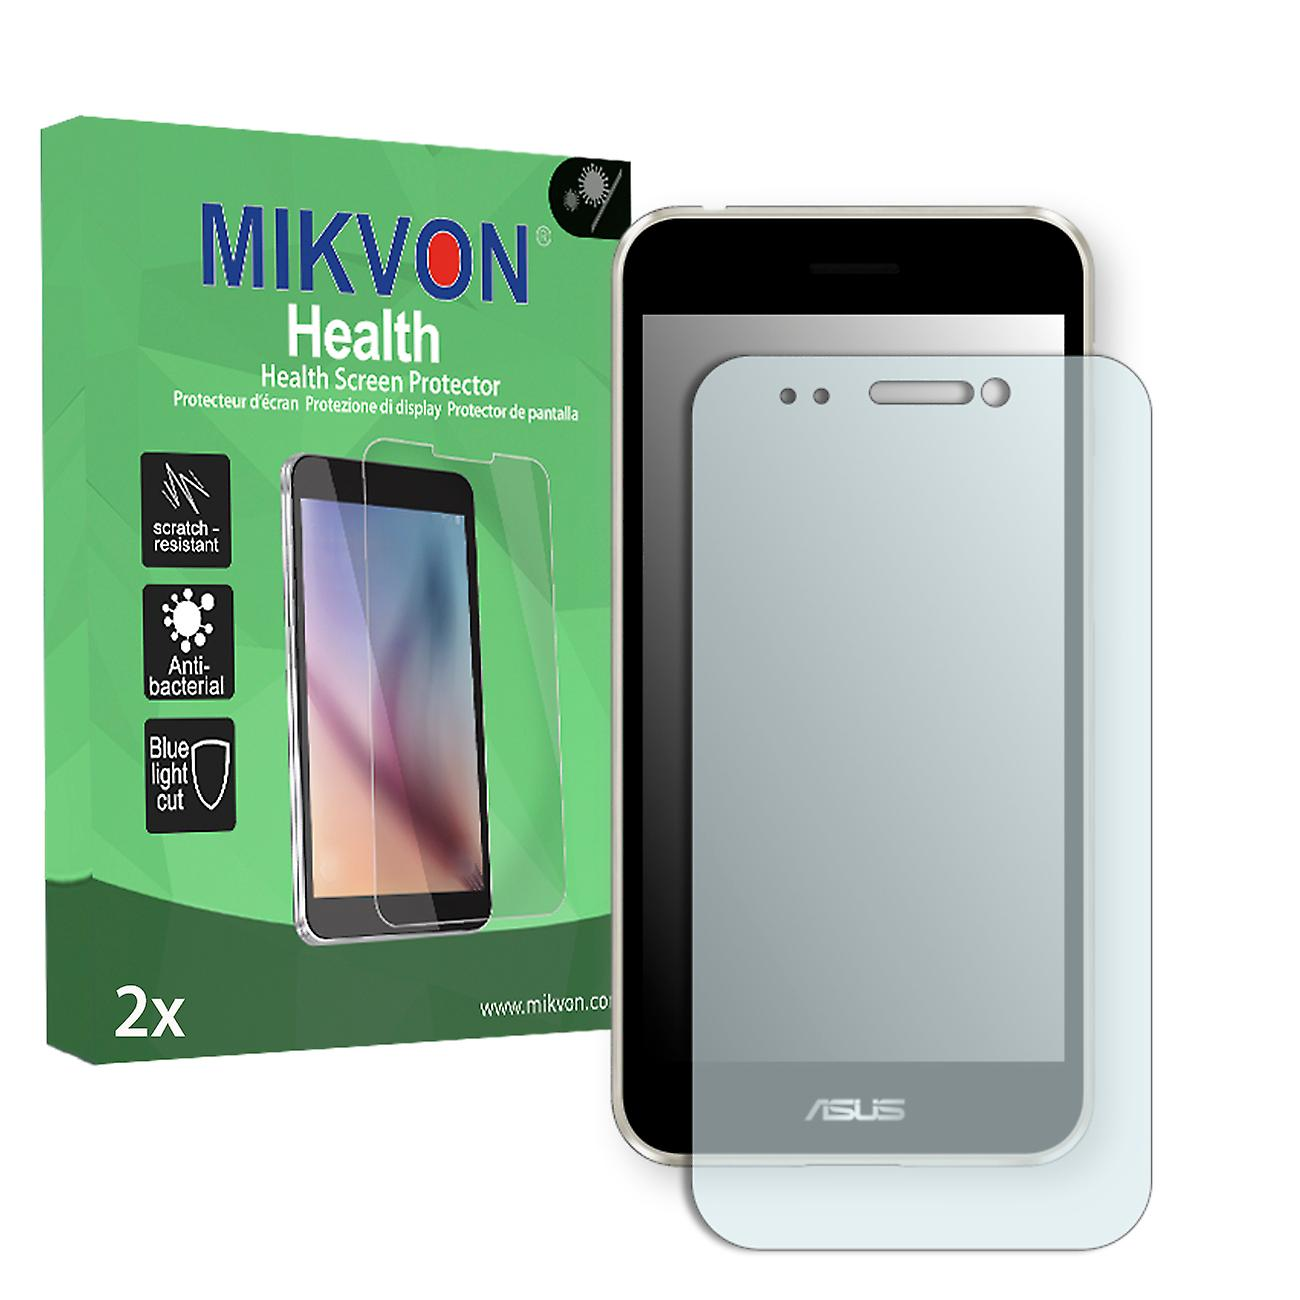 Asus PadFone Screen Protector - Mikvon Health (Retail Package with accessories)